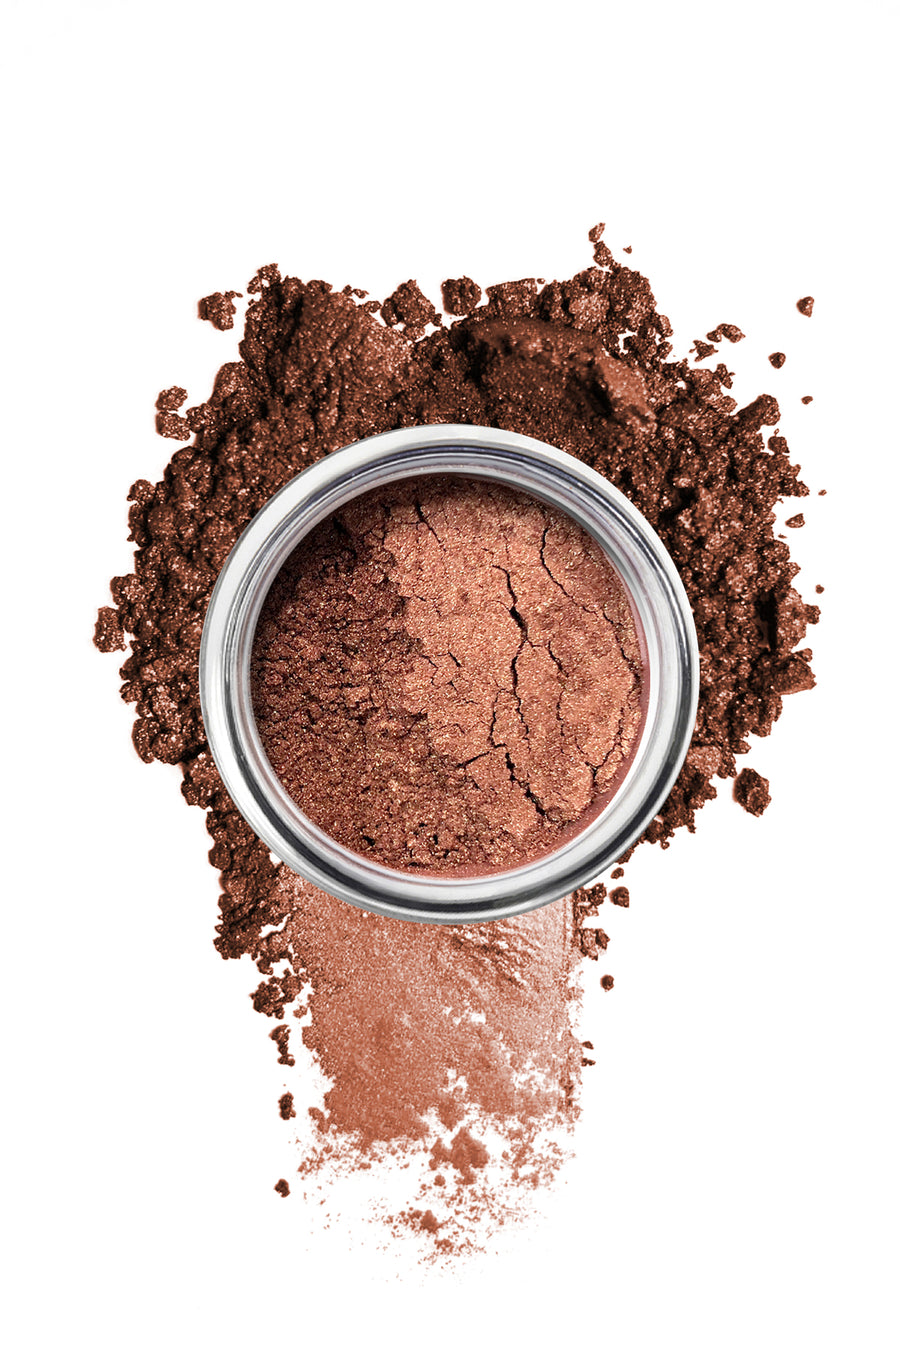 Shimmer Eyeshadow #53 - Light Bronze - Blend Mineral Cosmetics